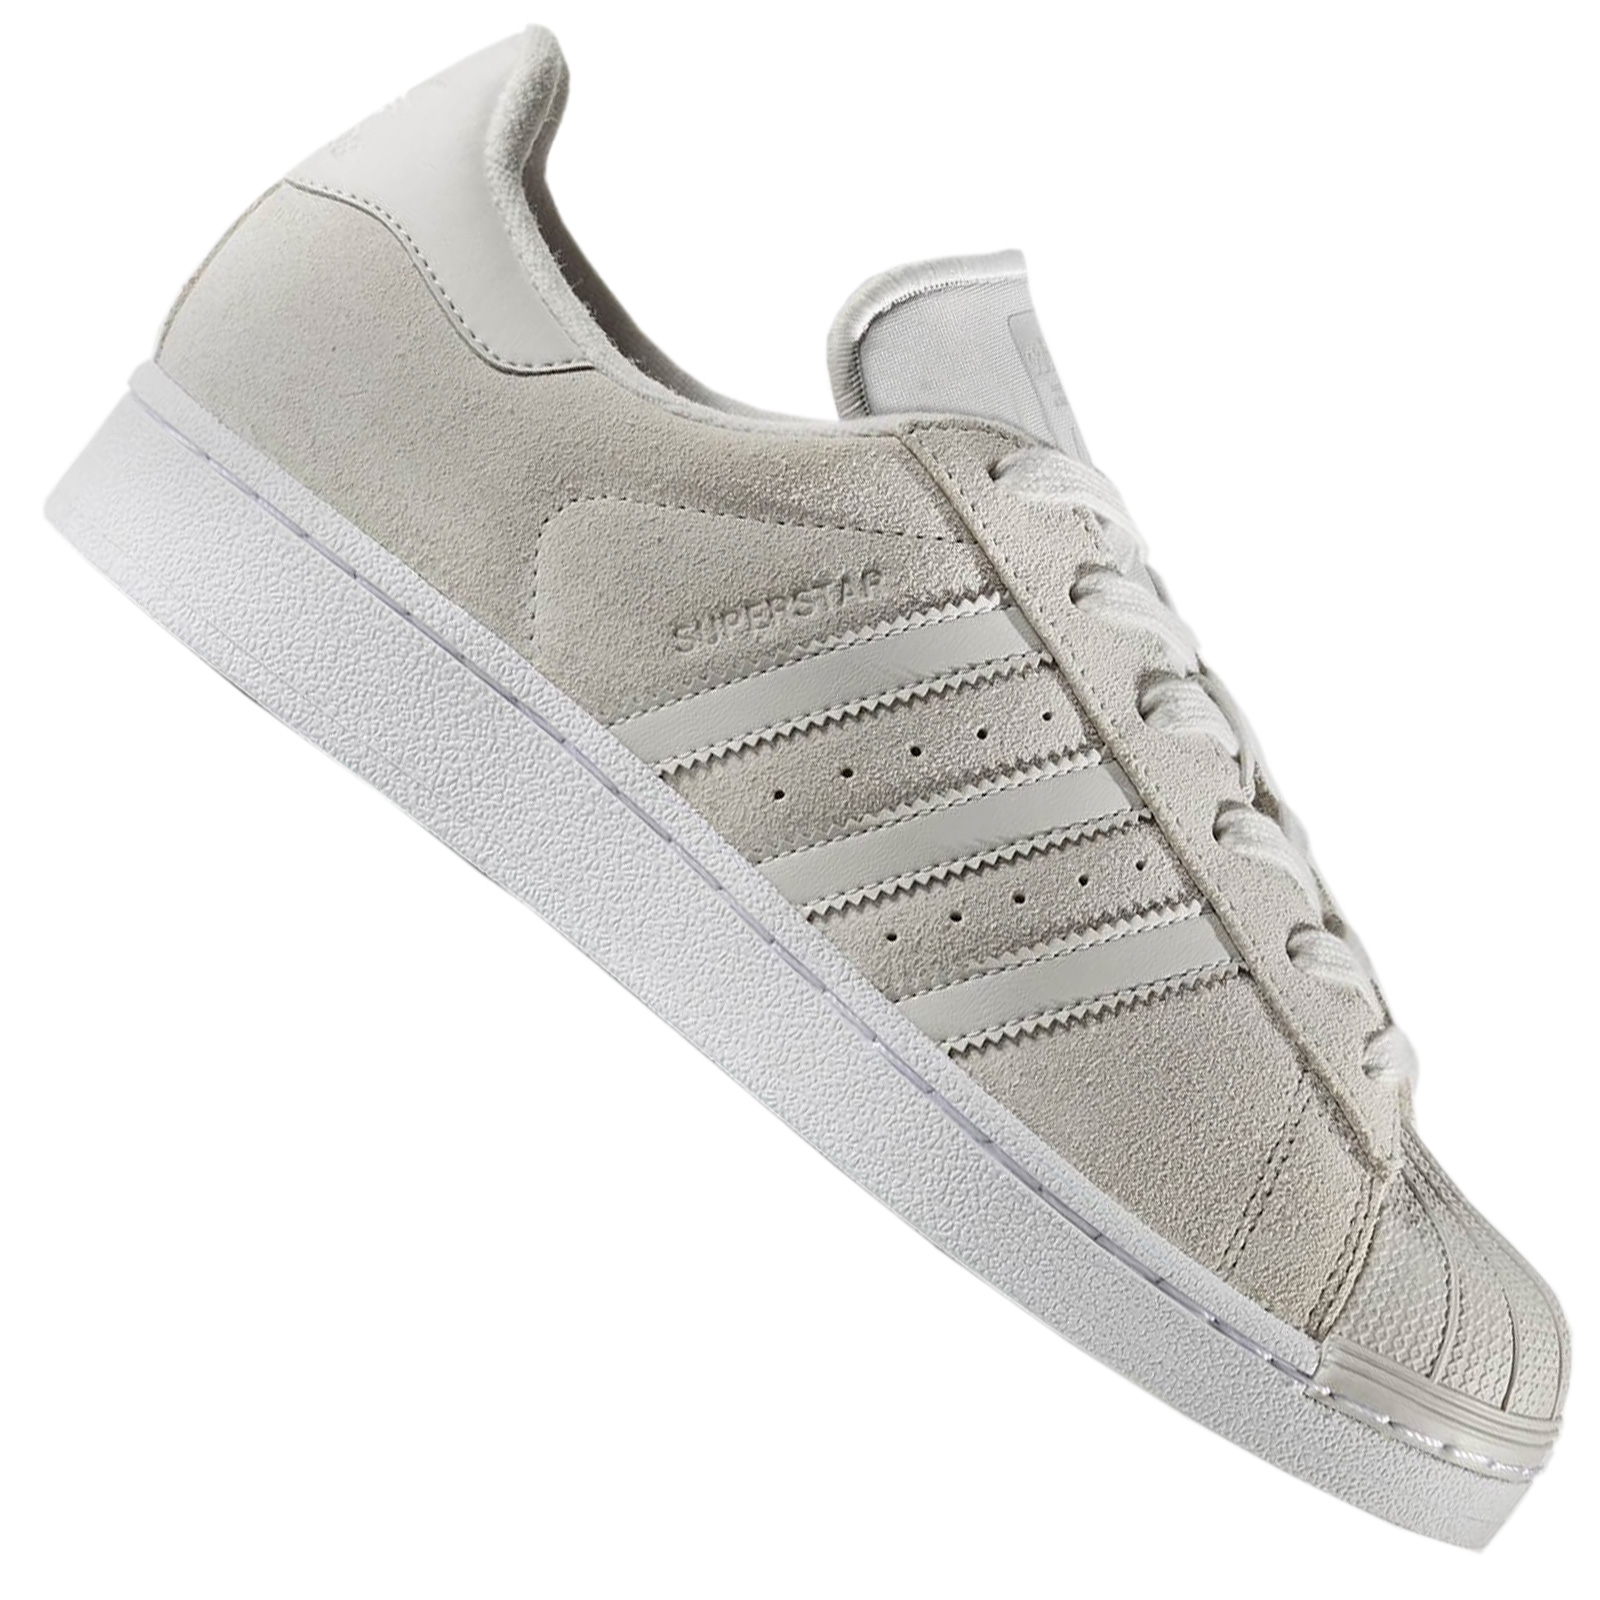 new product af39c 89732 adidas Originals Clean Superstar Turnschuhe Wildleder Leder Hellgrau Grau  CP9893